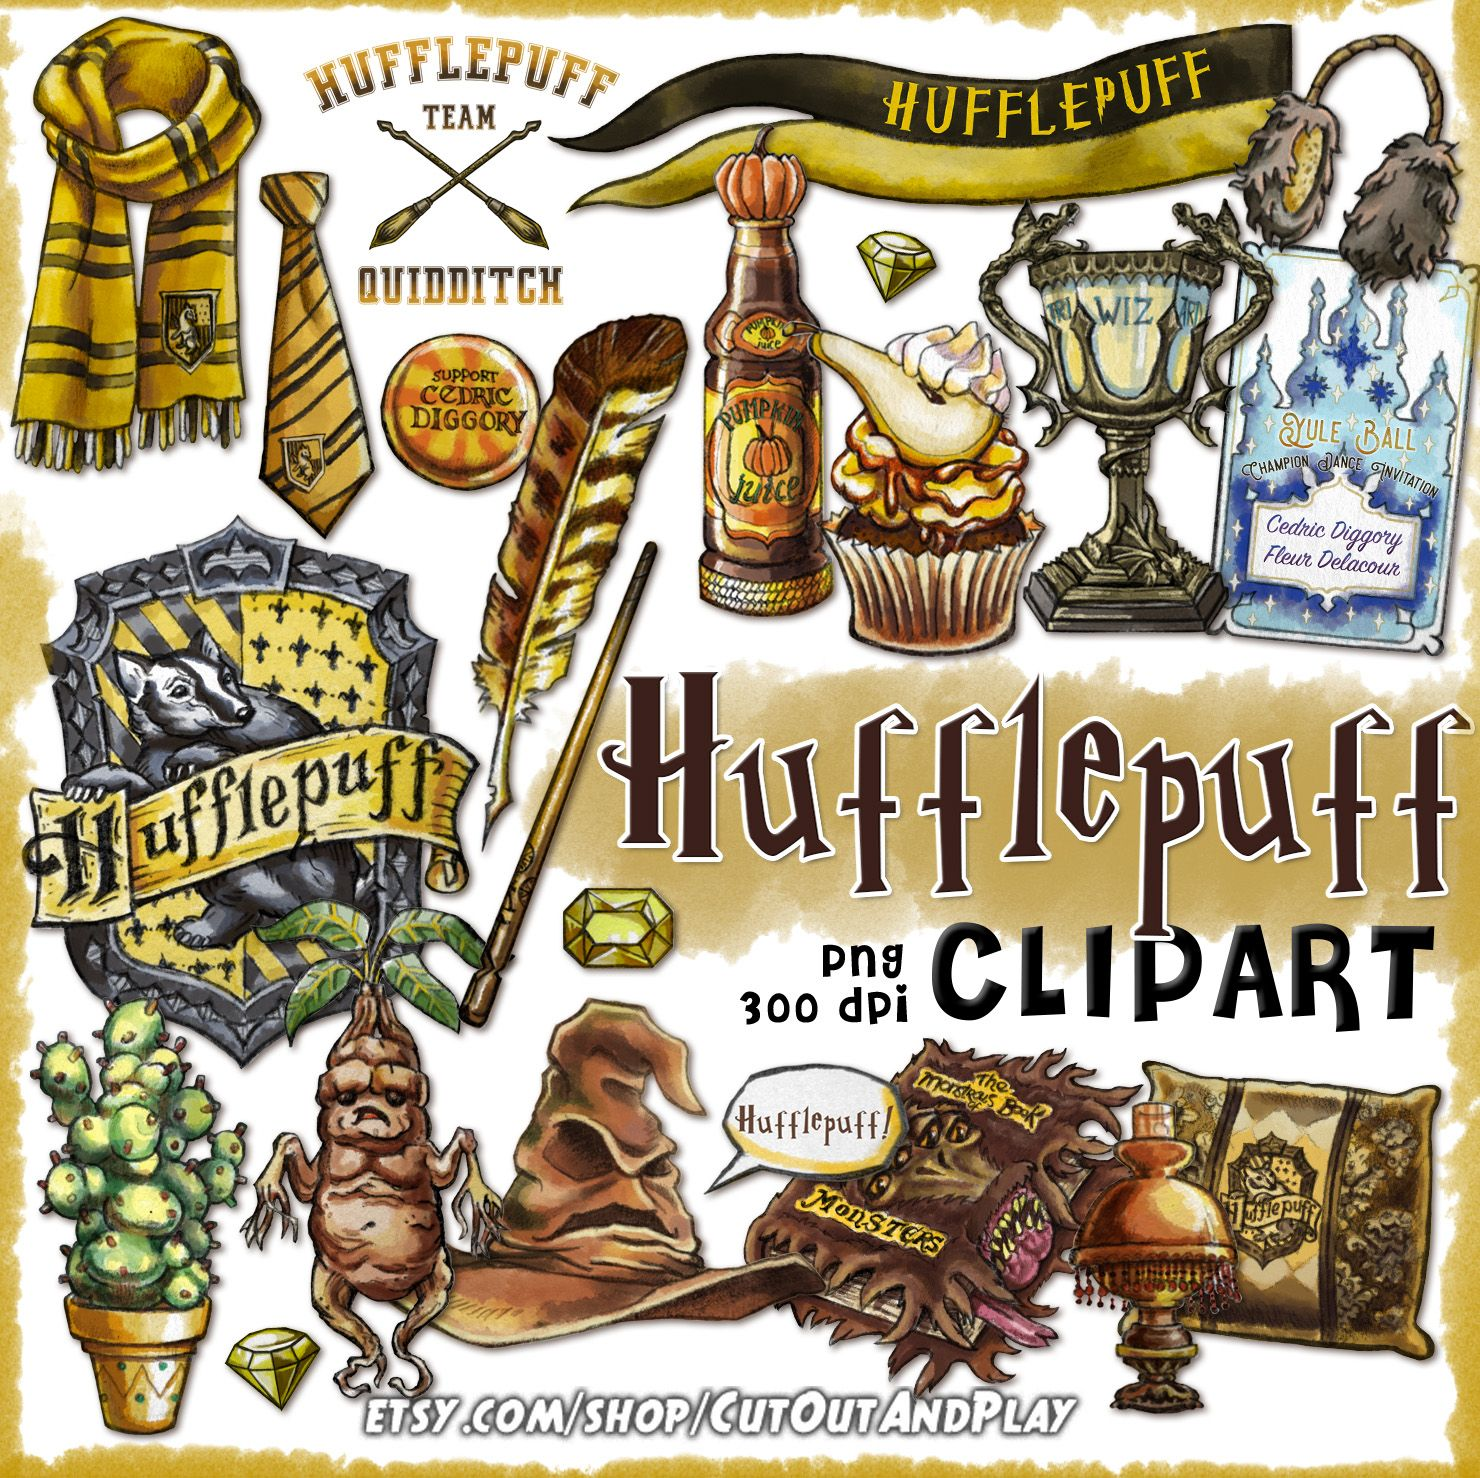 Hufflepuff clipart, Harry Potter clipart, Harry potter party, props.